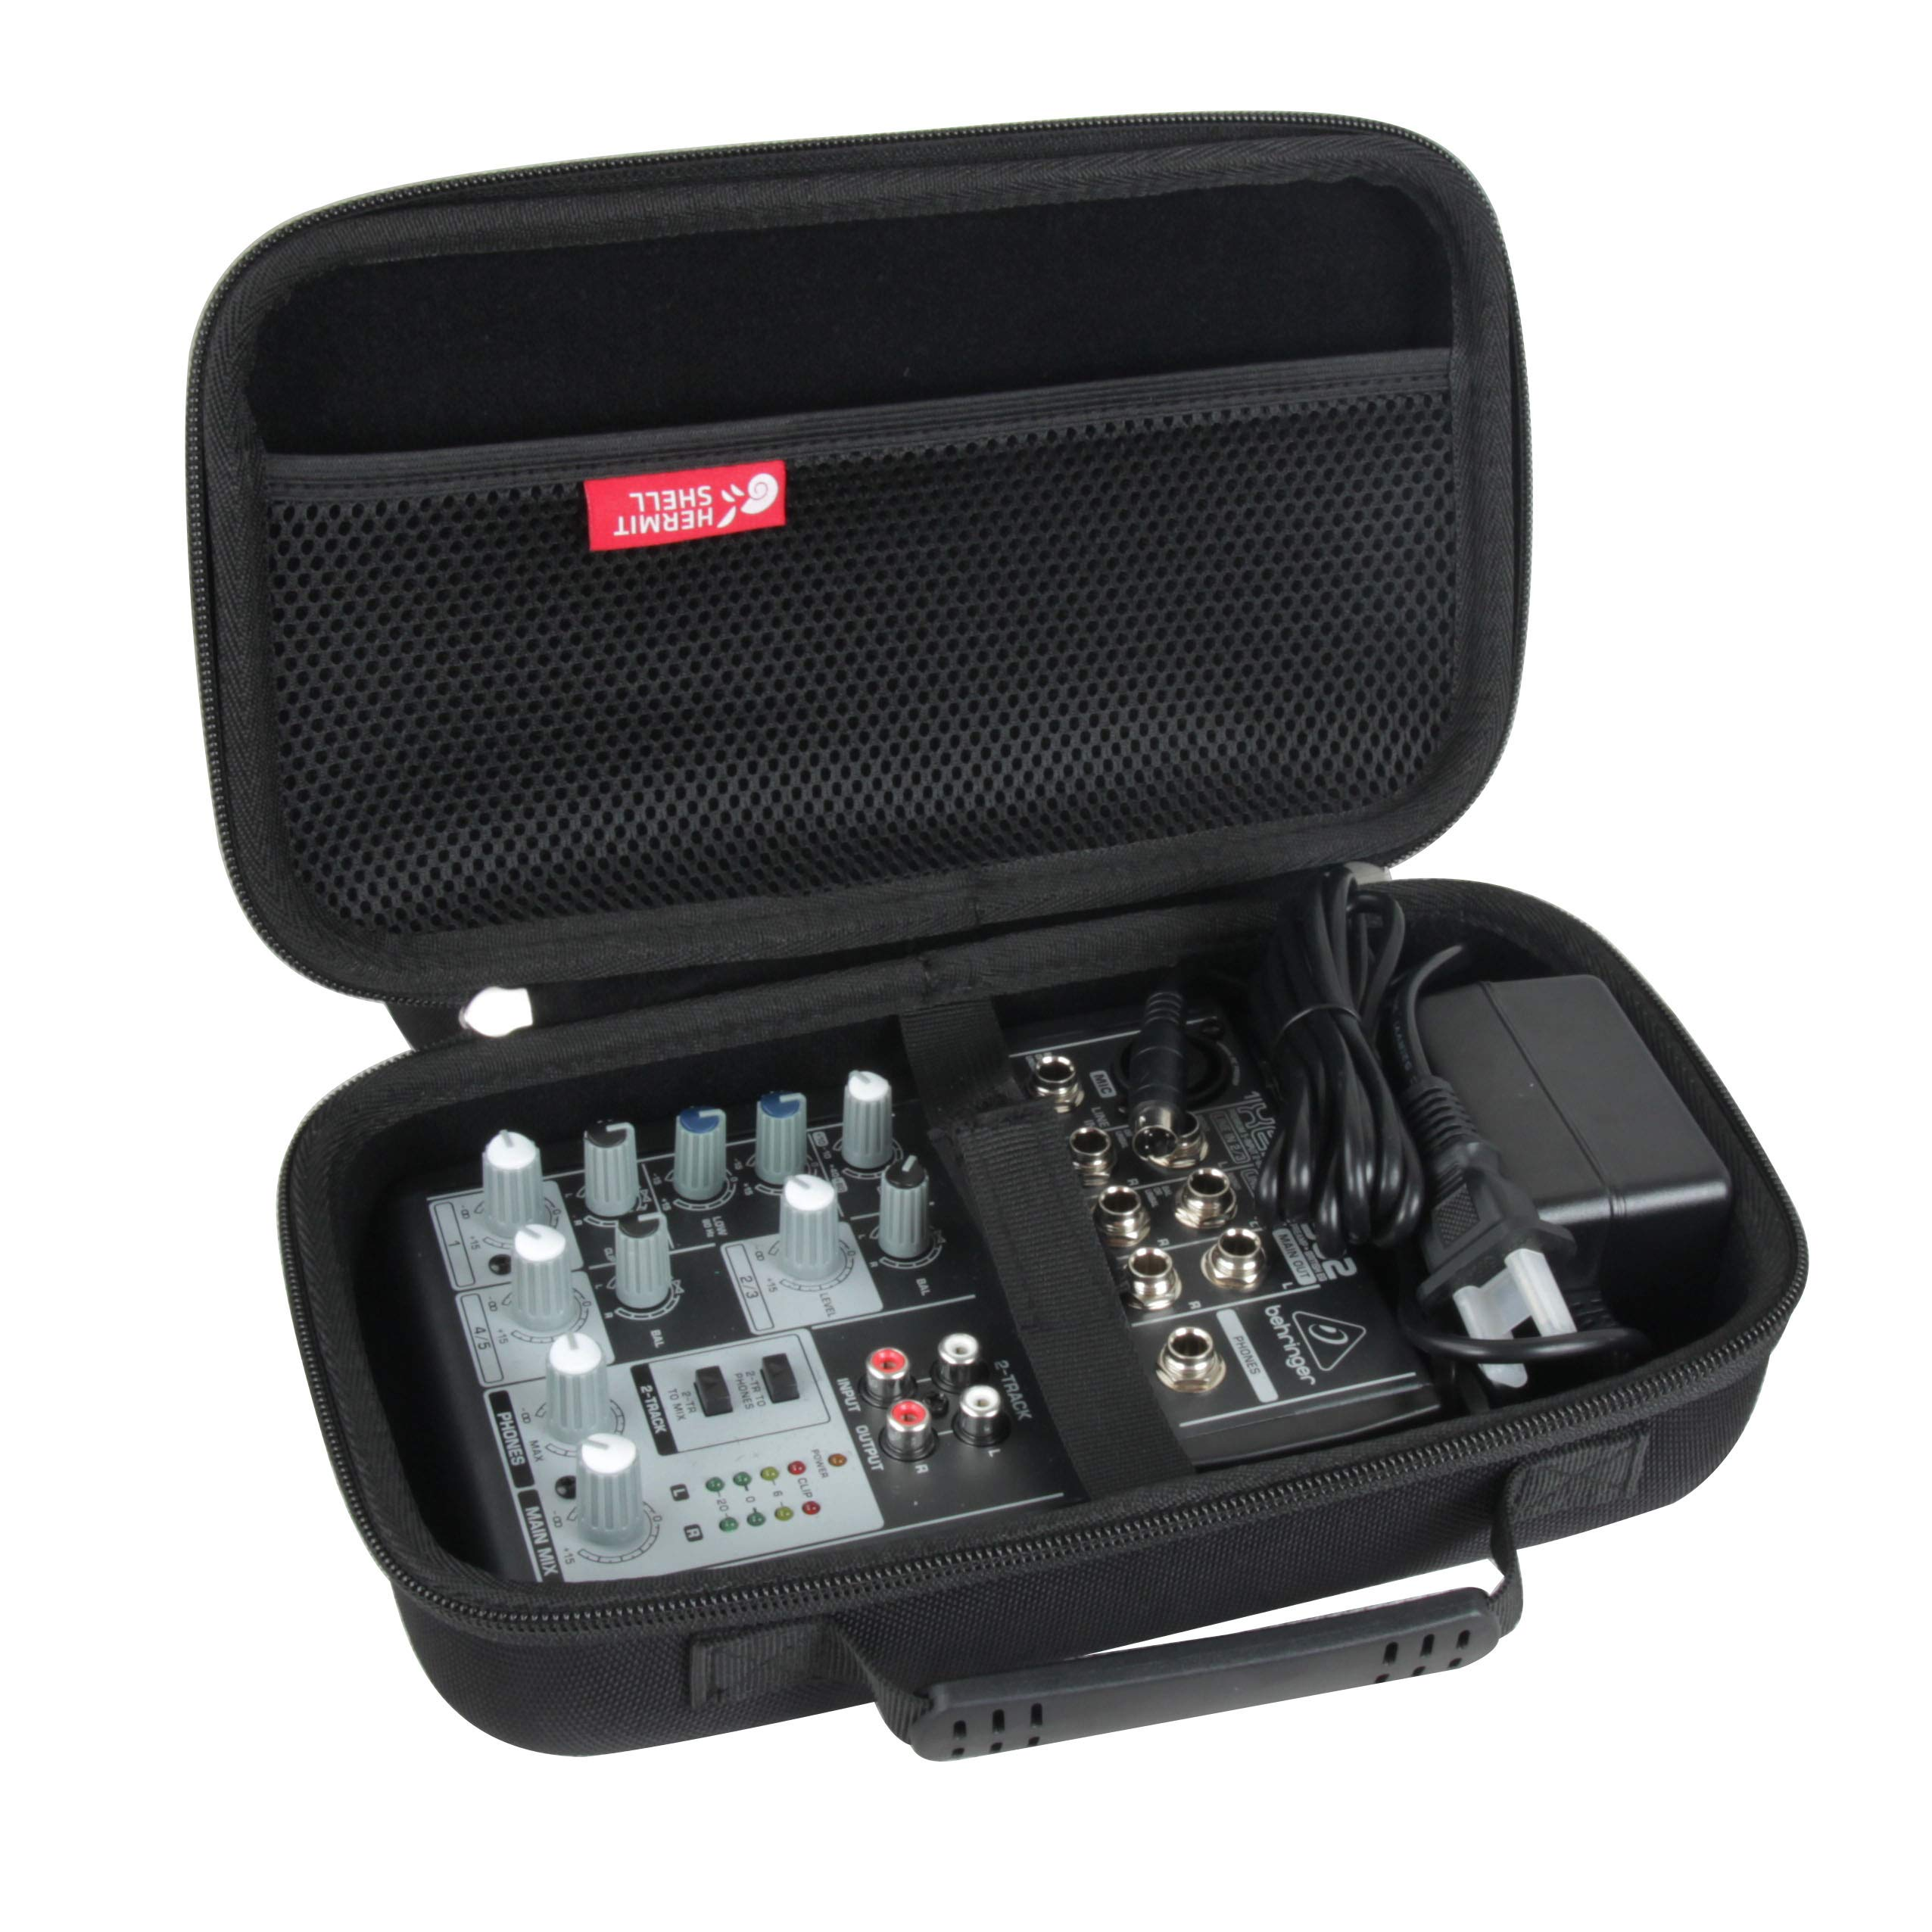 Hermitshell Hard Travel Case for Behringer Xenyx 502 Premium 5-Input 2-Bus Mixer